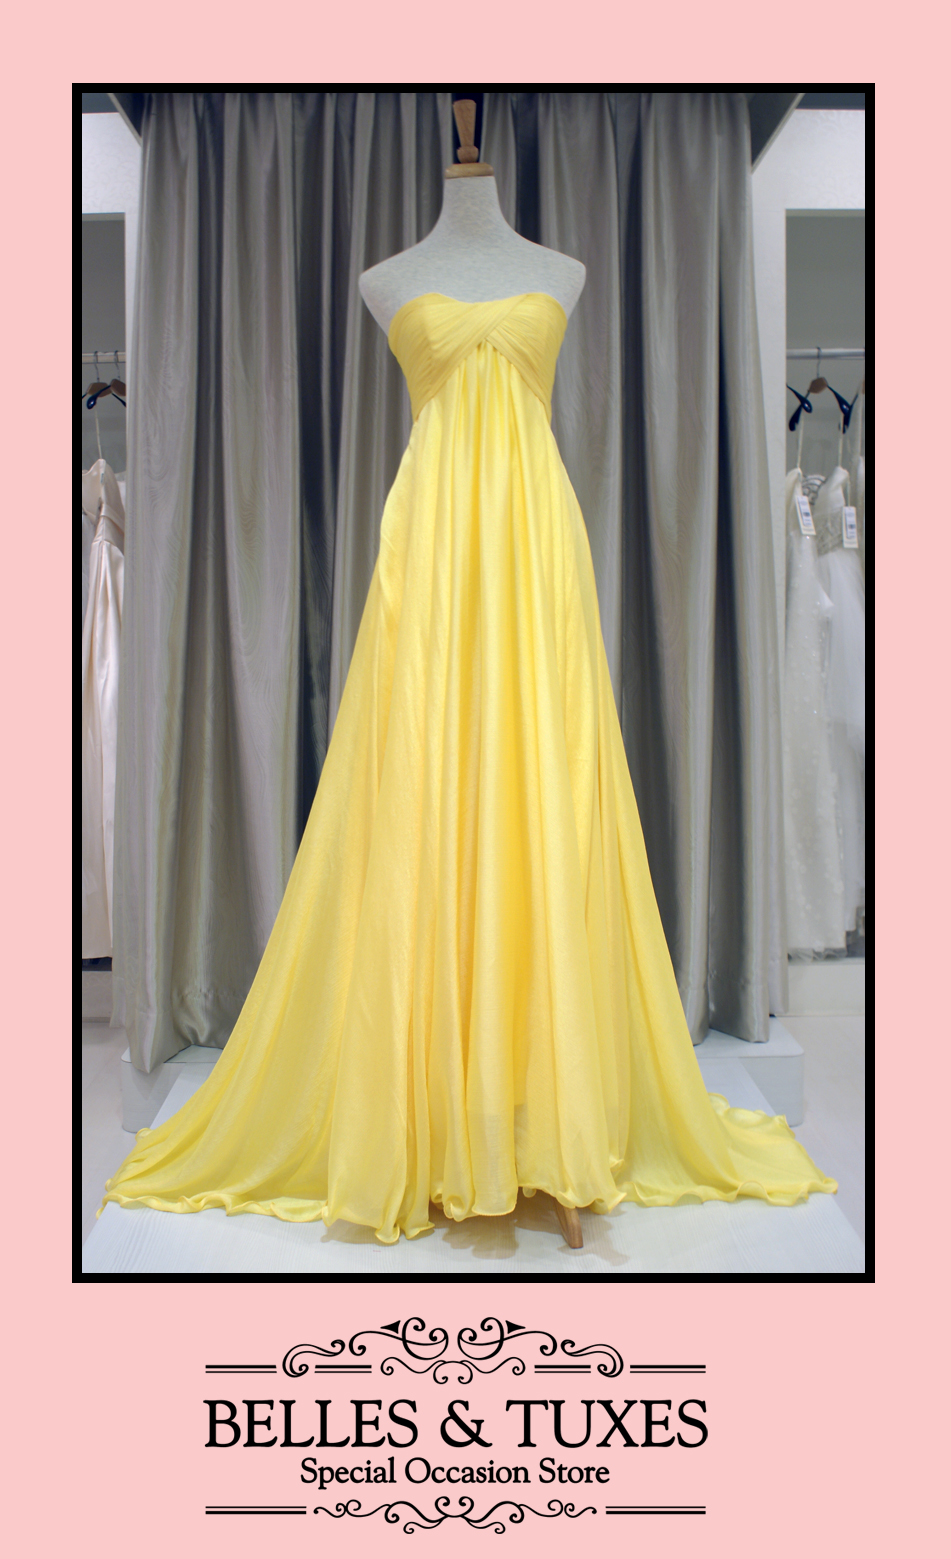 Belles & Tuxes - Wedding & Special Occasion Store: Evening Dress ...